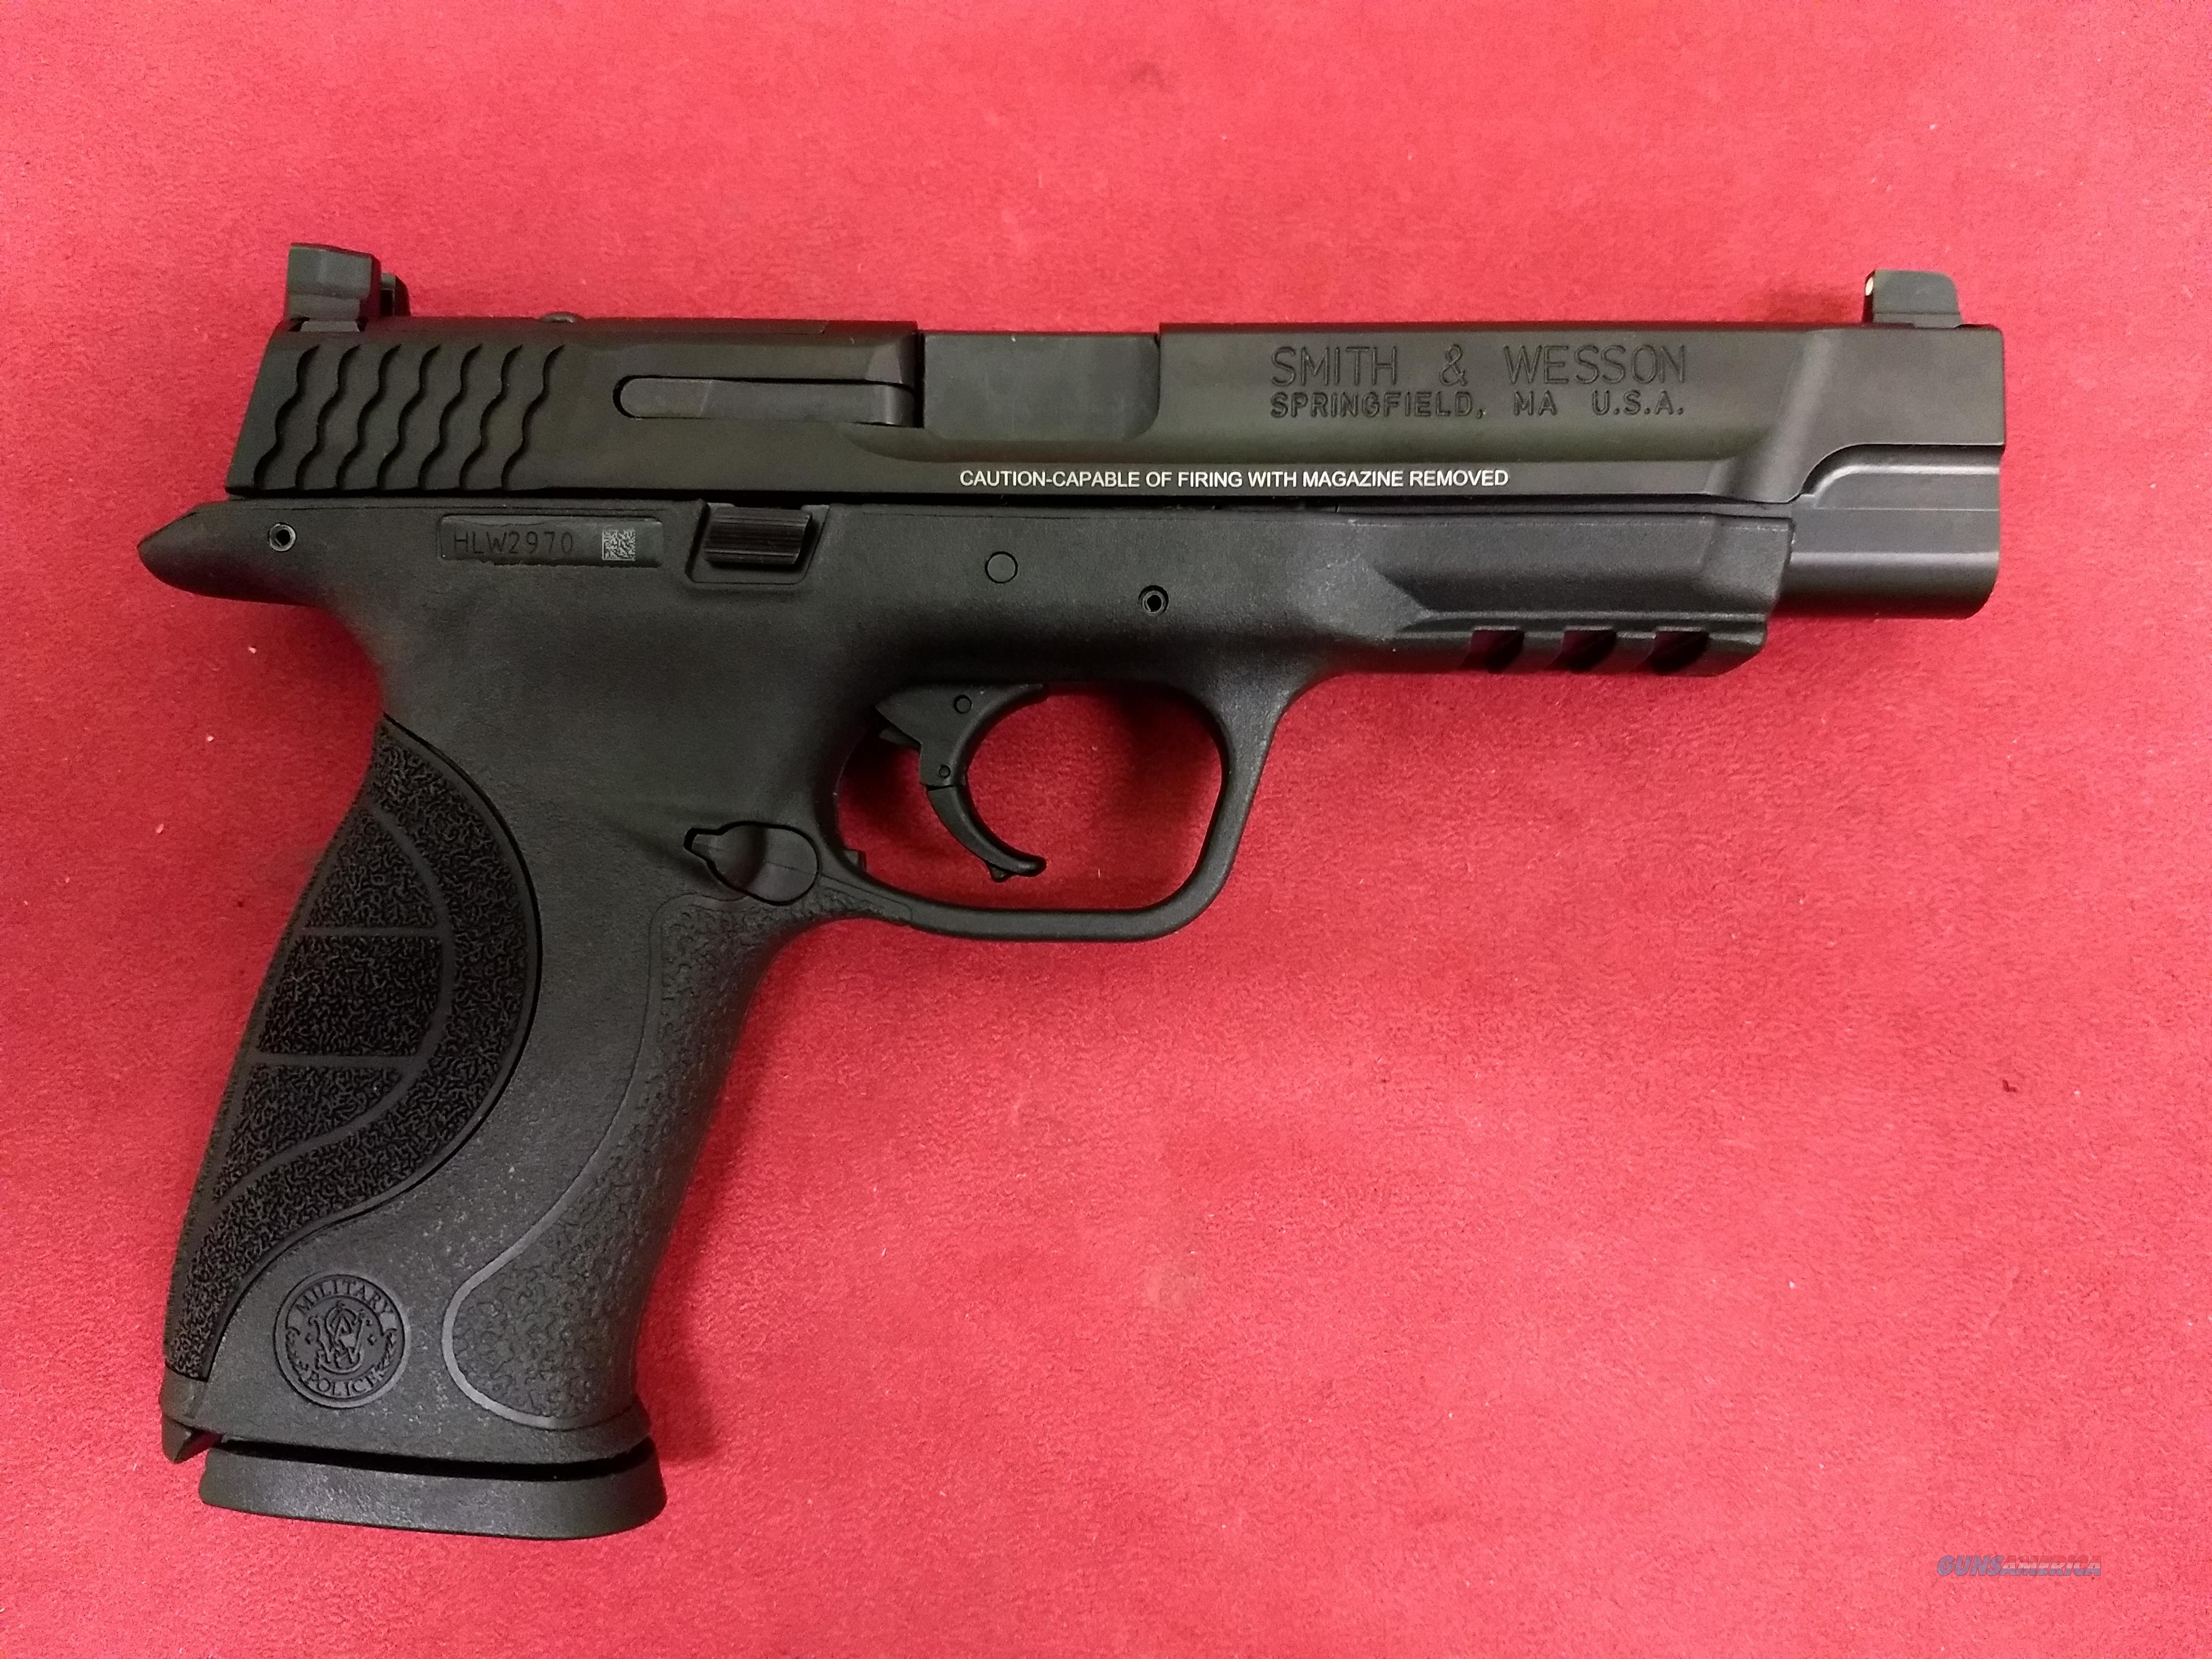 S&W M&P9 Long Slide, C.O.R.E. Pro Series, NIB  Guns > Pistols > Smith & Wesson Pistols - Autos > Polymer Frame